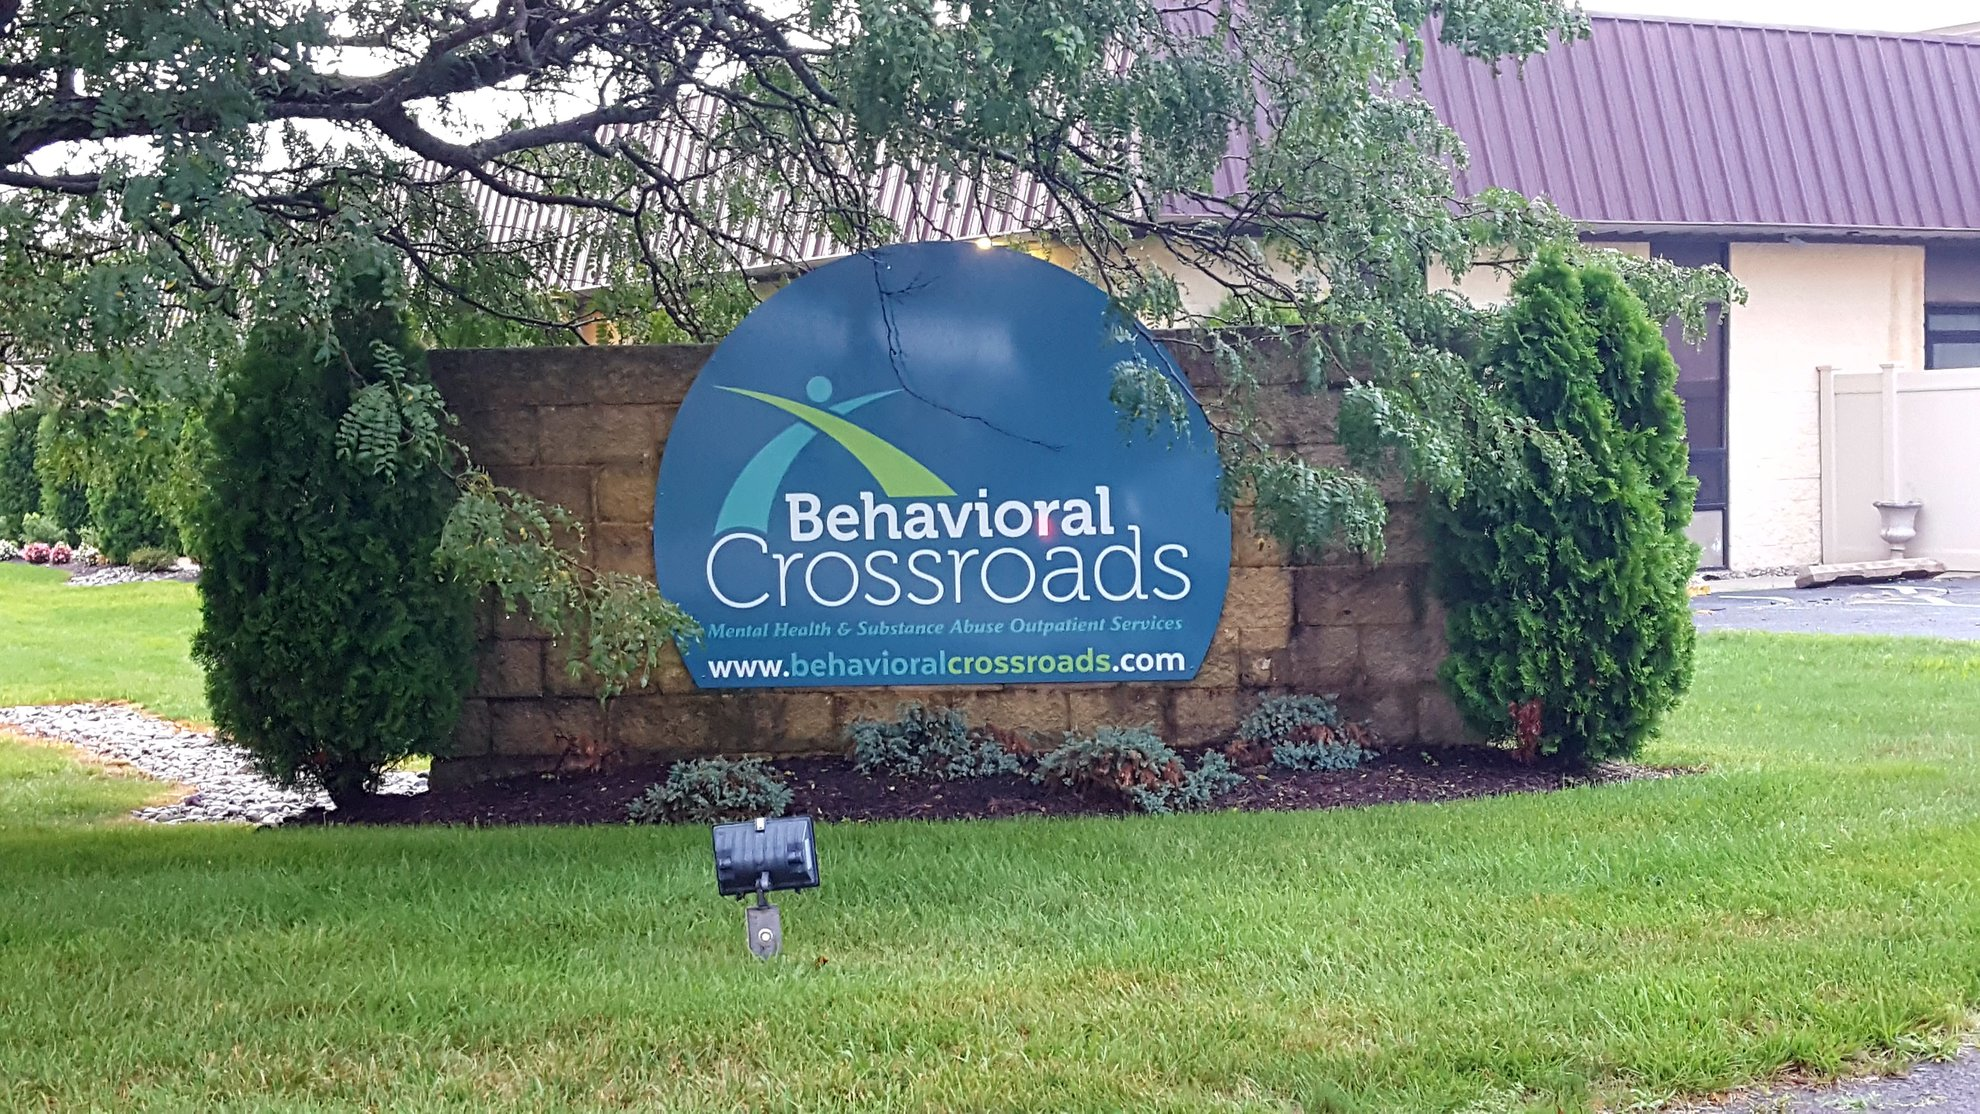 Photo of Behavioral Crossroads, LLC